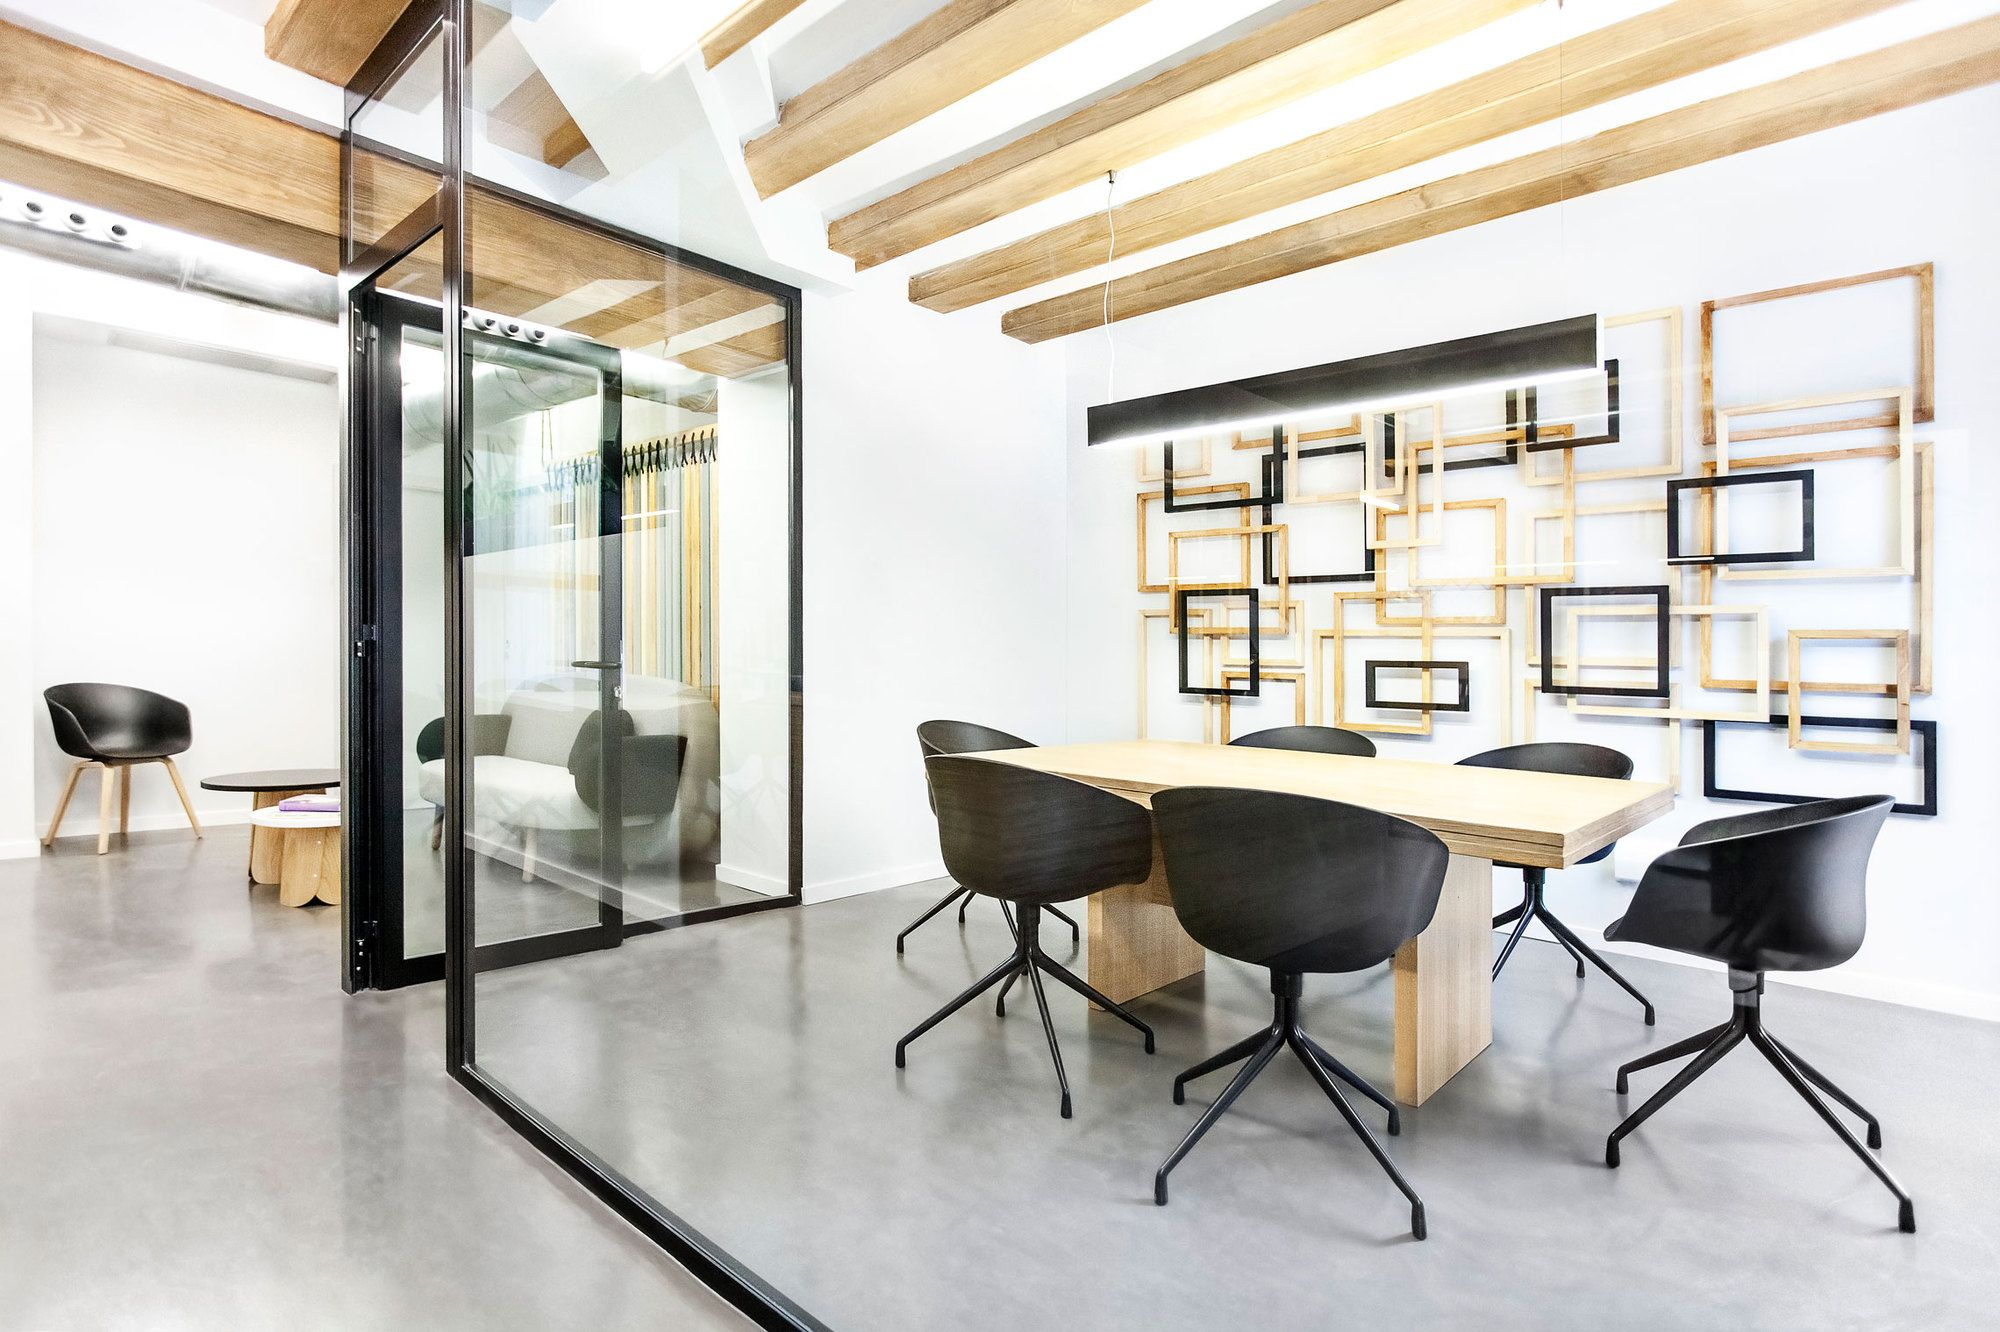 Law office meeting room design www pinterest com seeyond www seeyond com gallery